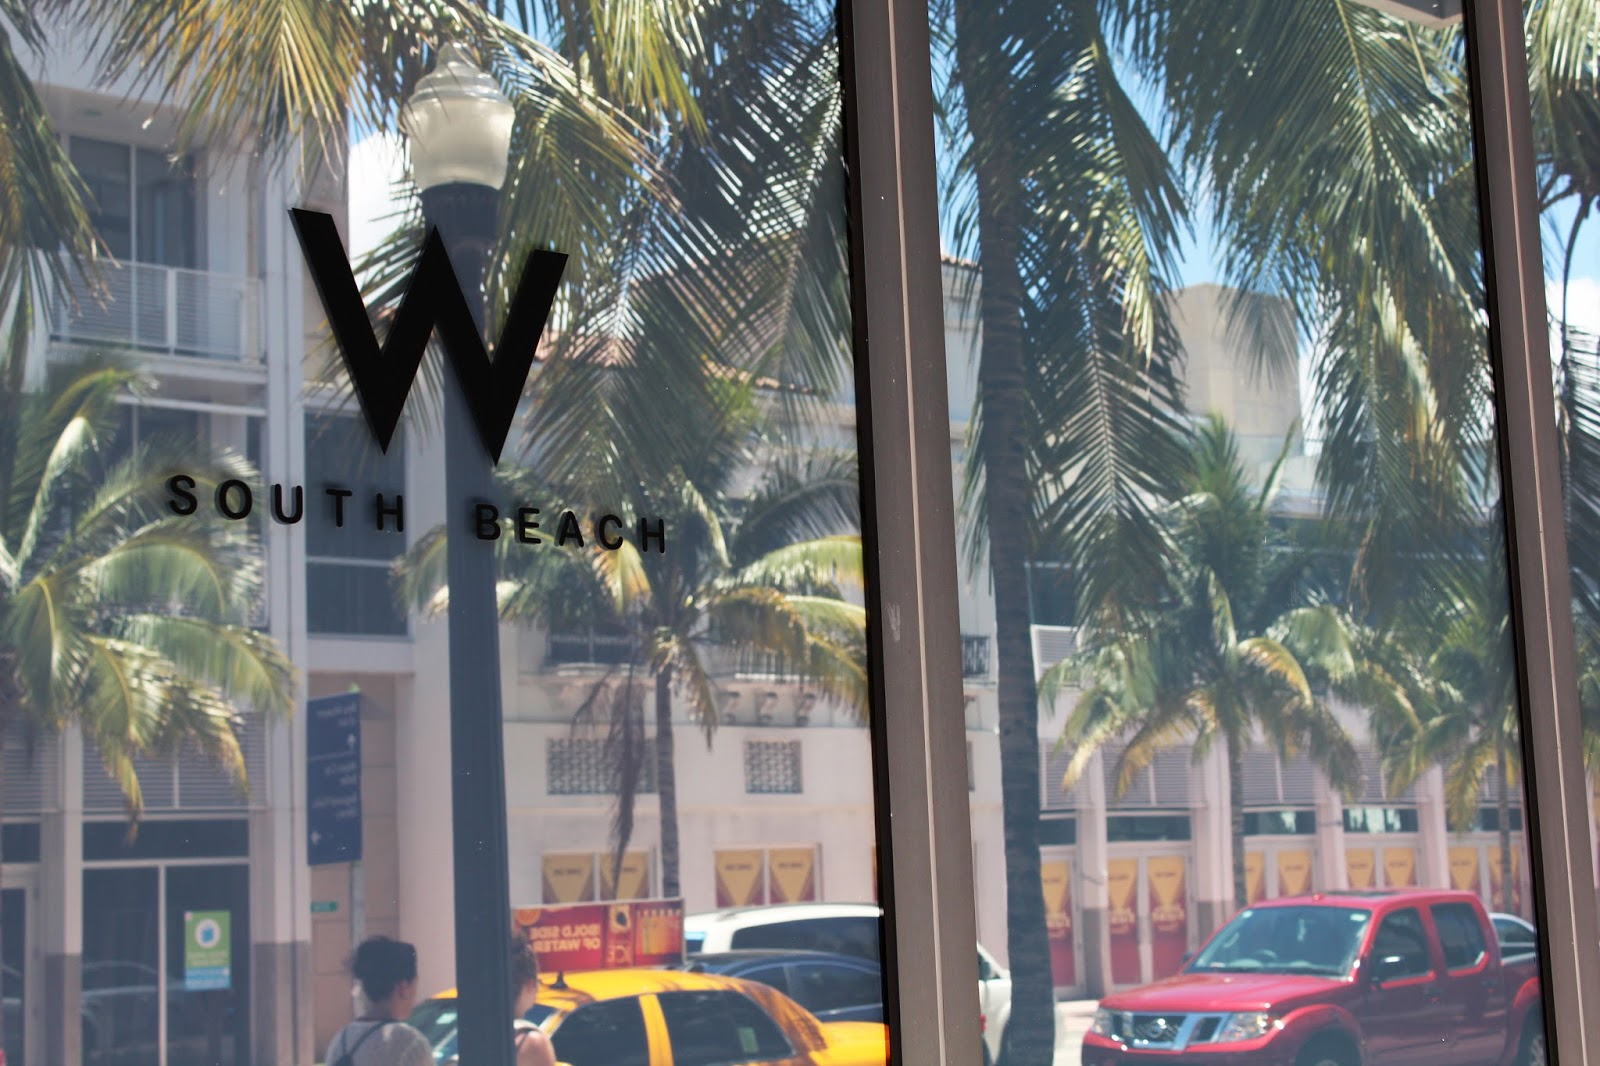 Pamela Victoria en SwimMiami Fashion Week - Hotel W south beach Runway - www.pamela-victoria.com